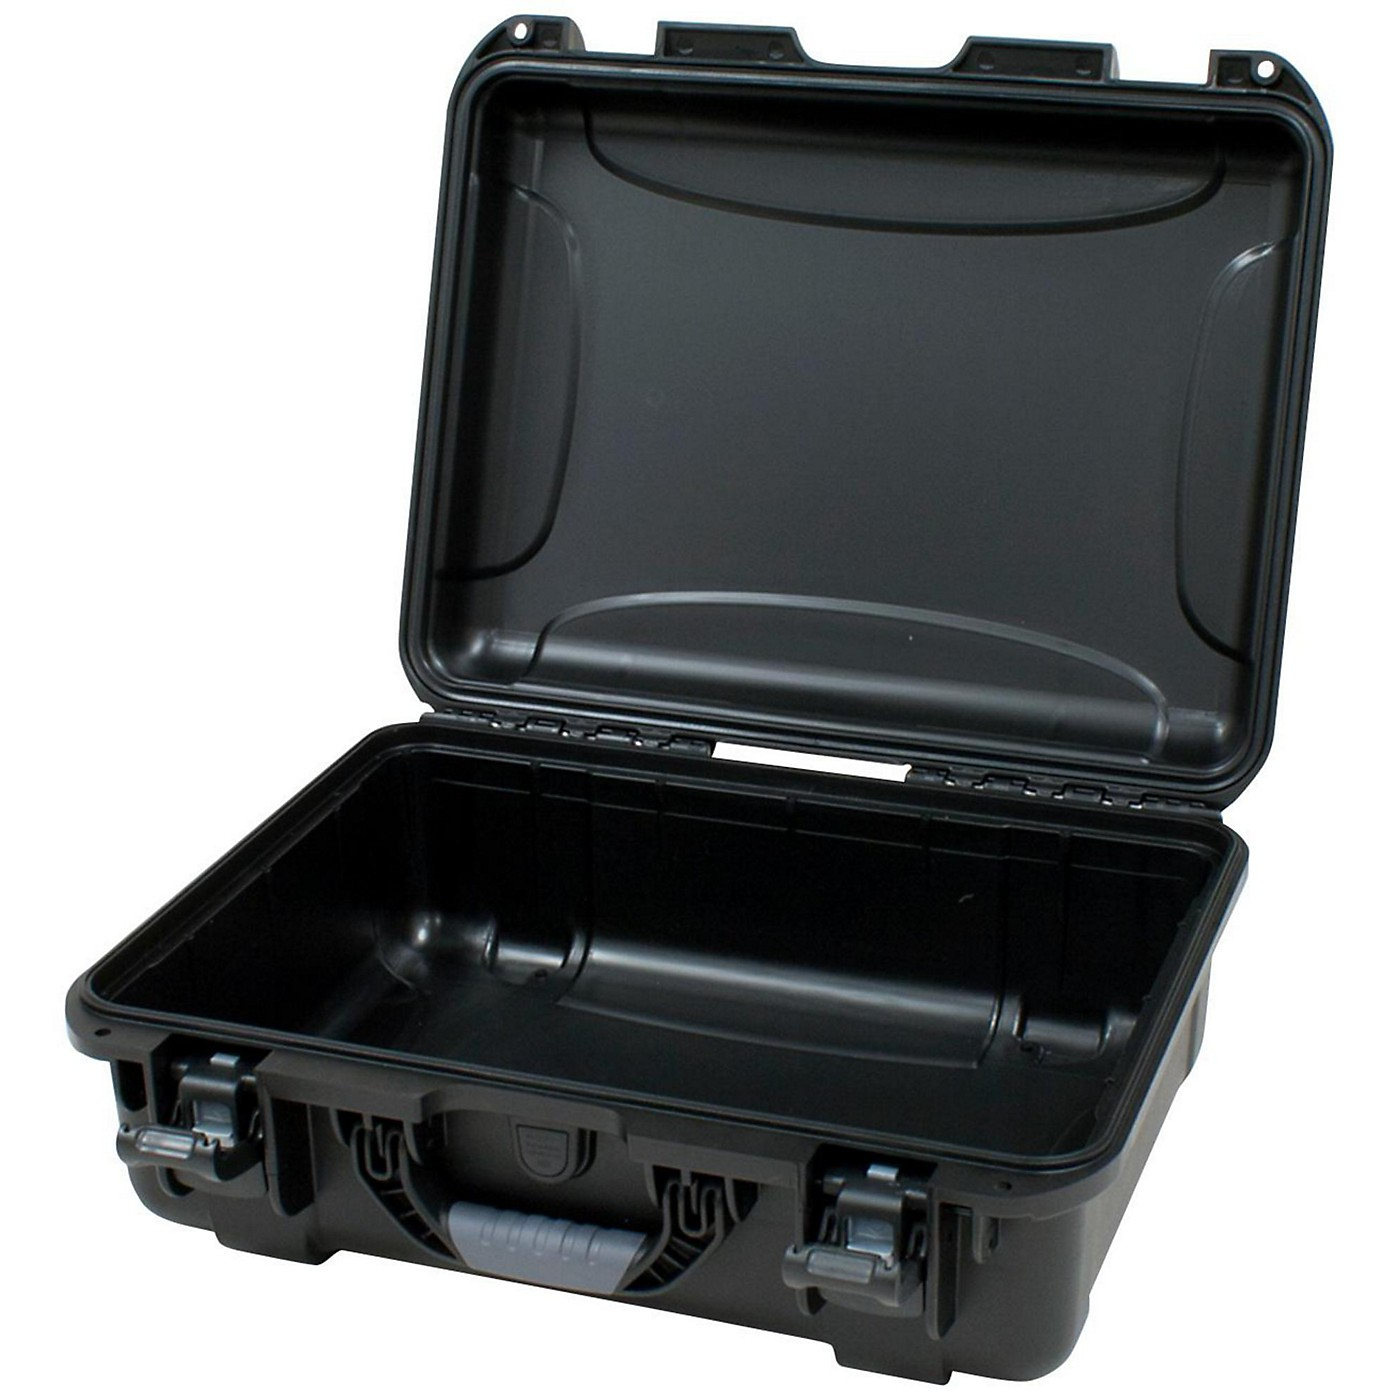 Gator GU-2011-07-WPNF Waterproof Injection Molded Case thumbnail